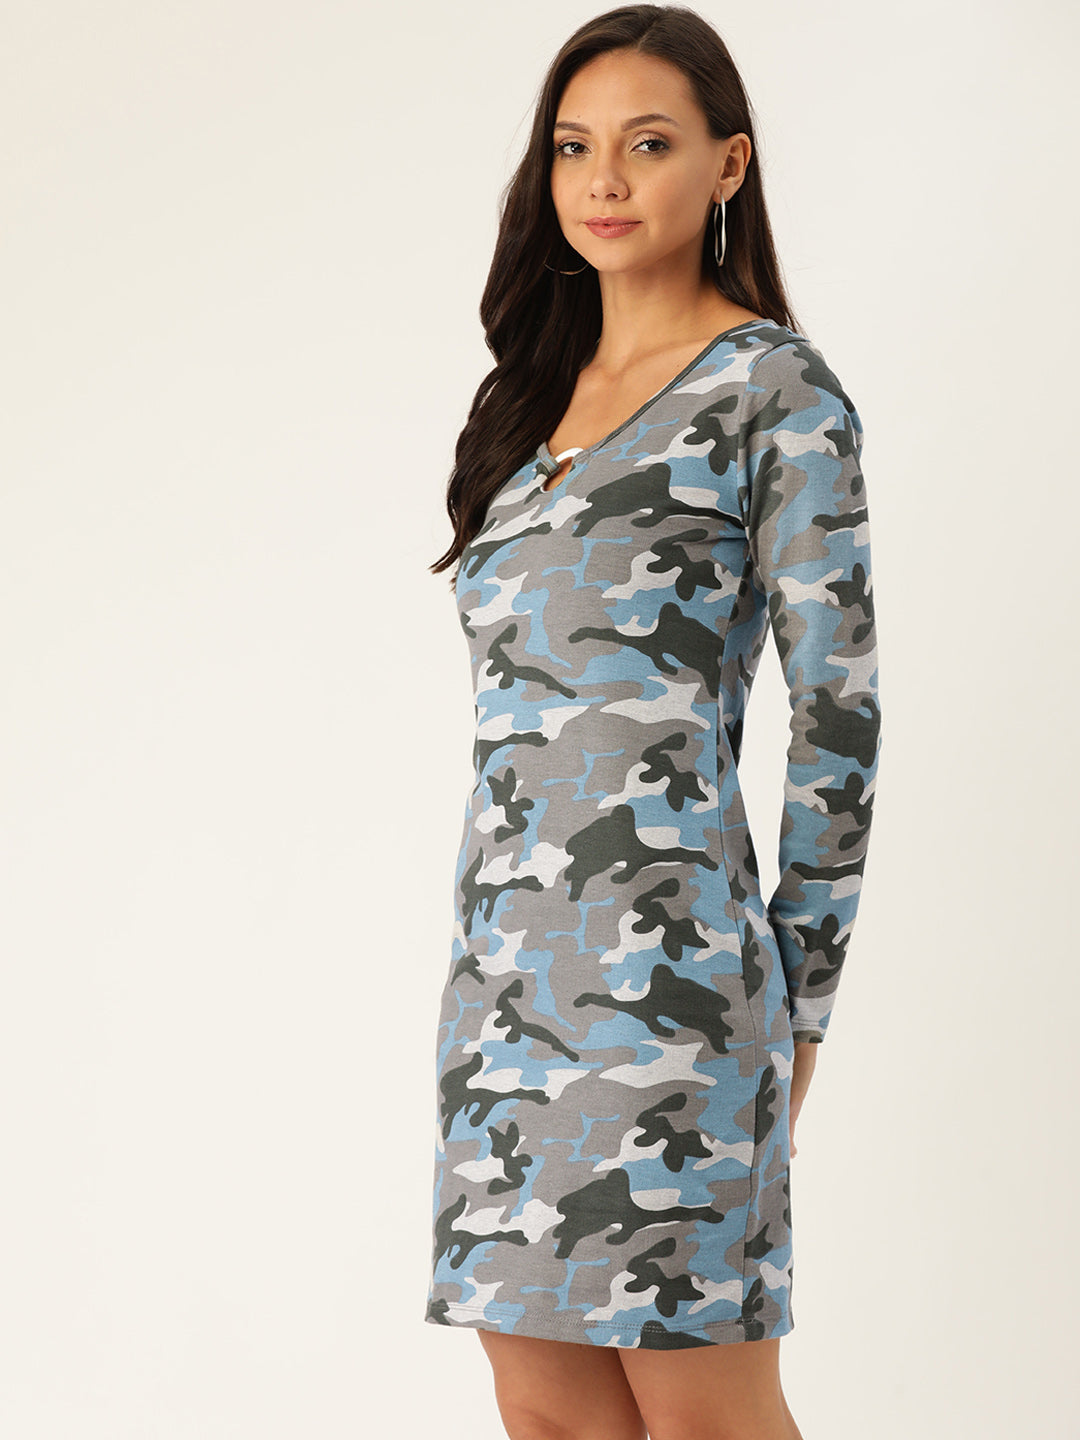 Rue Collection Women Grey & Blue Camouflage Printed Sheath Dress